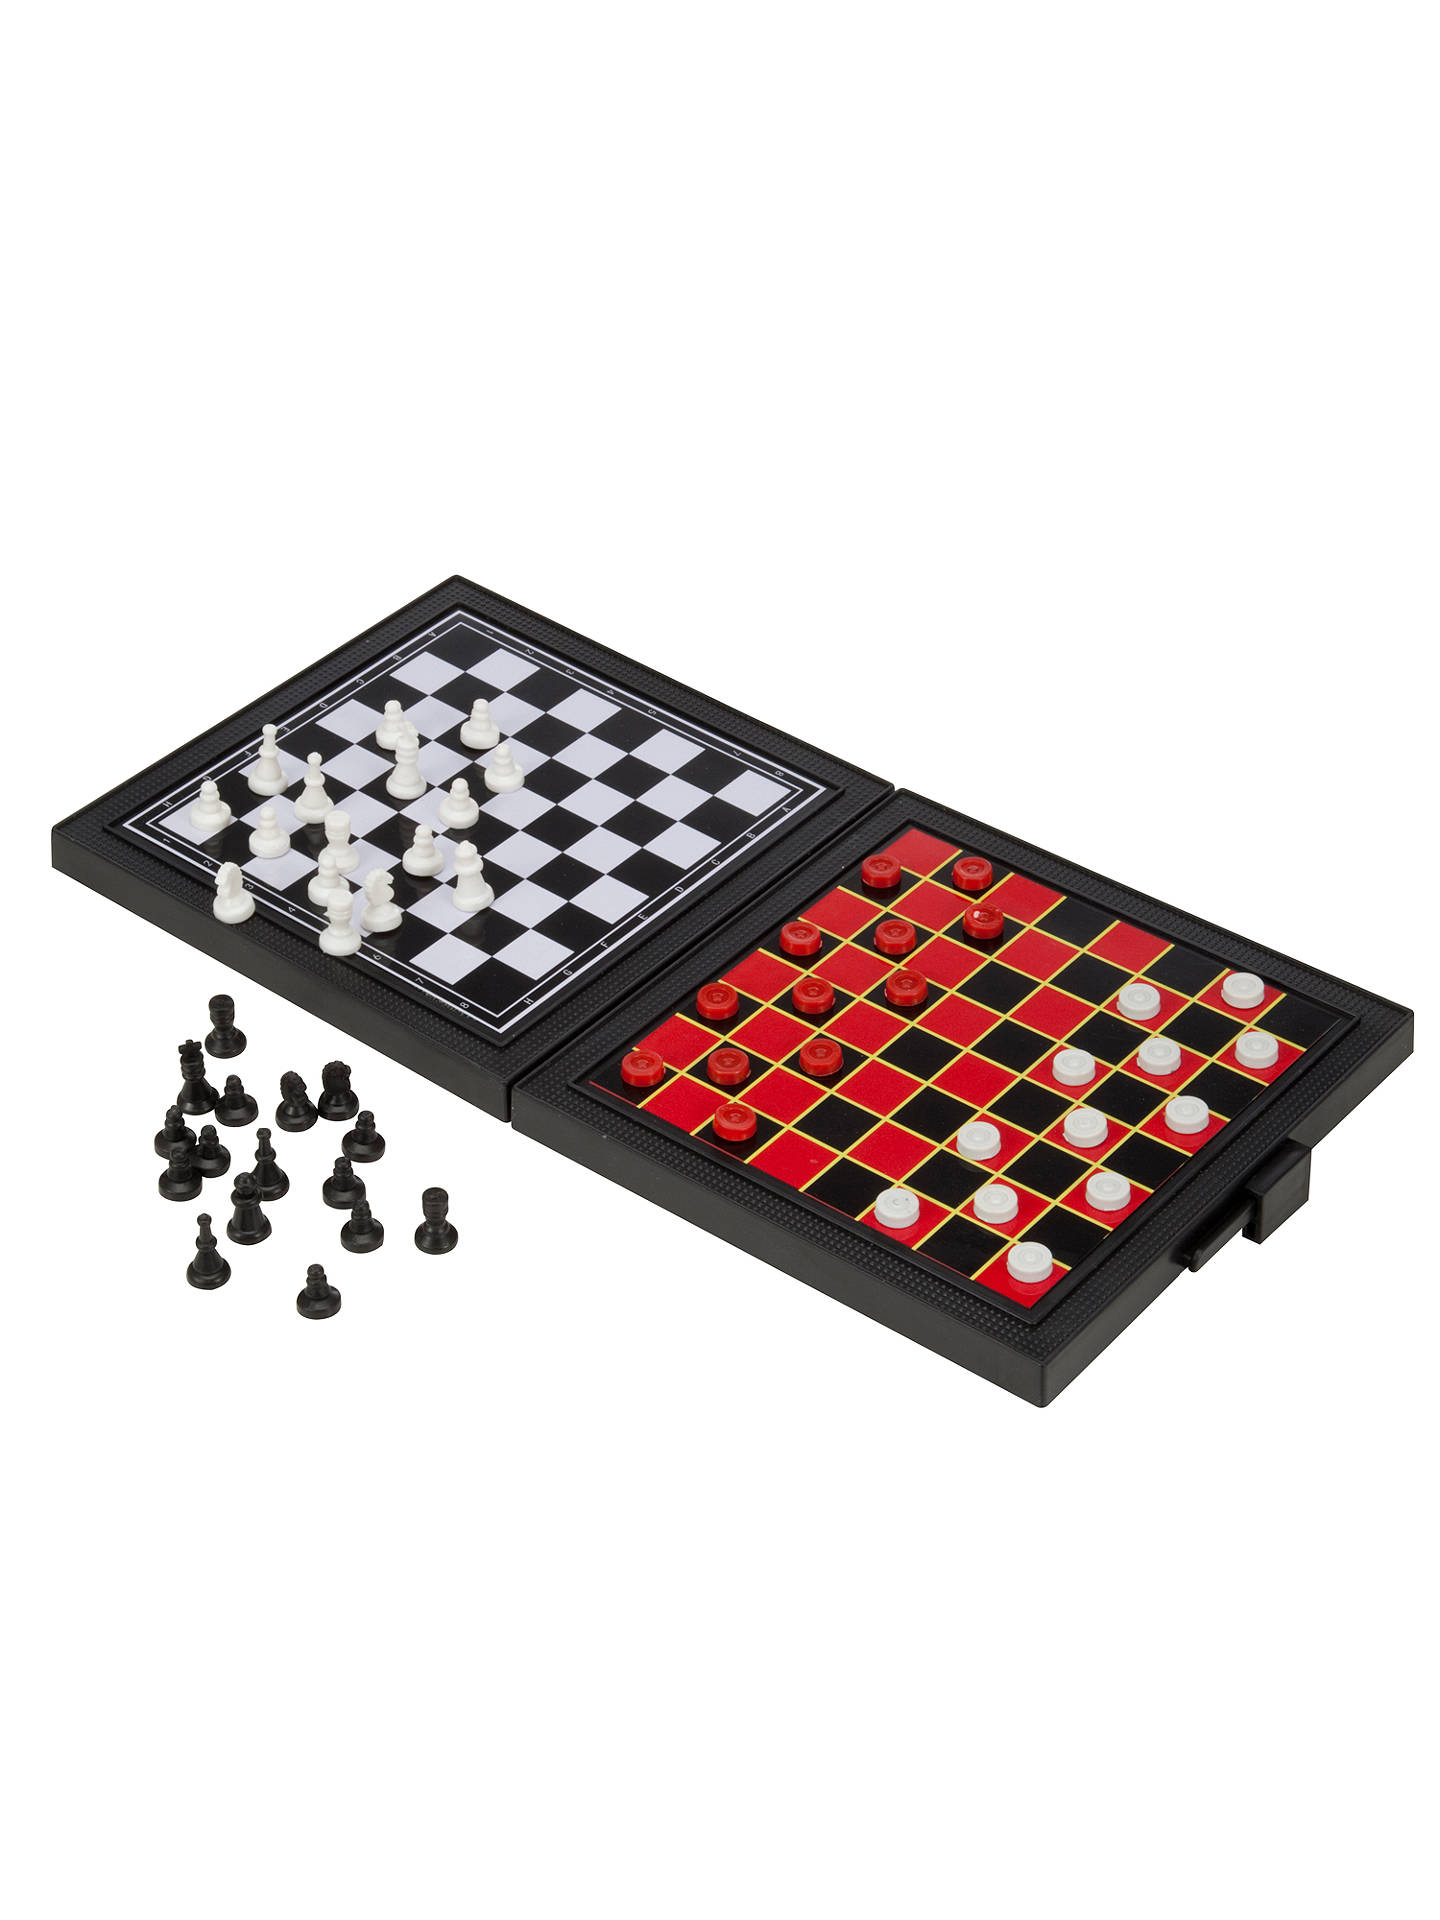 b1368dc24c90 Buy John Lewis 4-in-1 Magnetic Travel Game Online at johnlewis.com ...